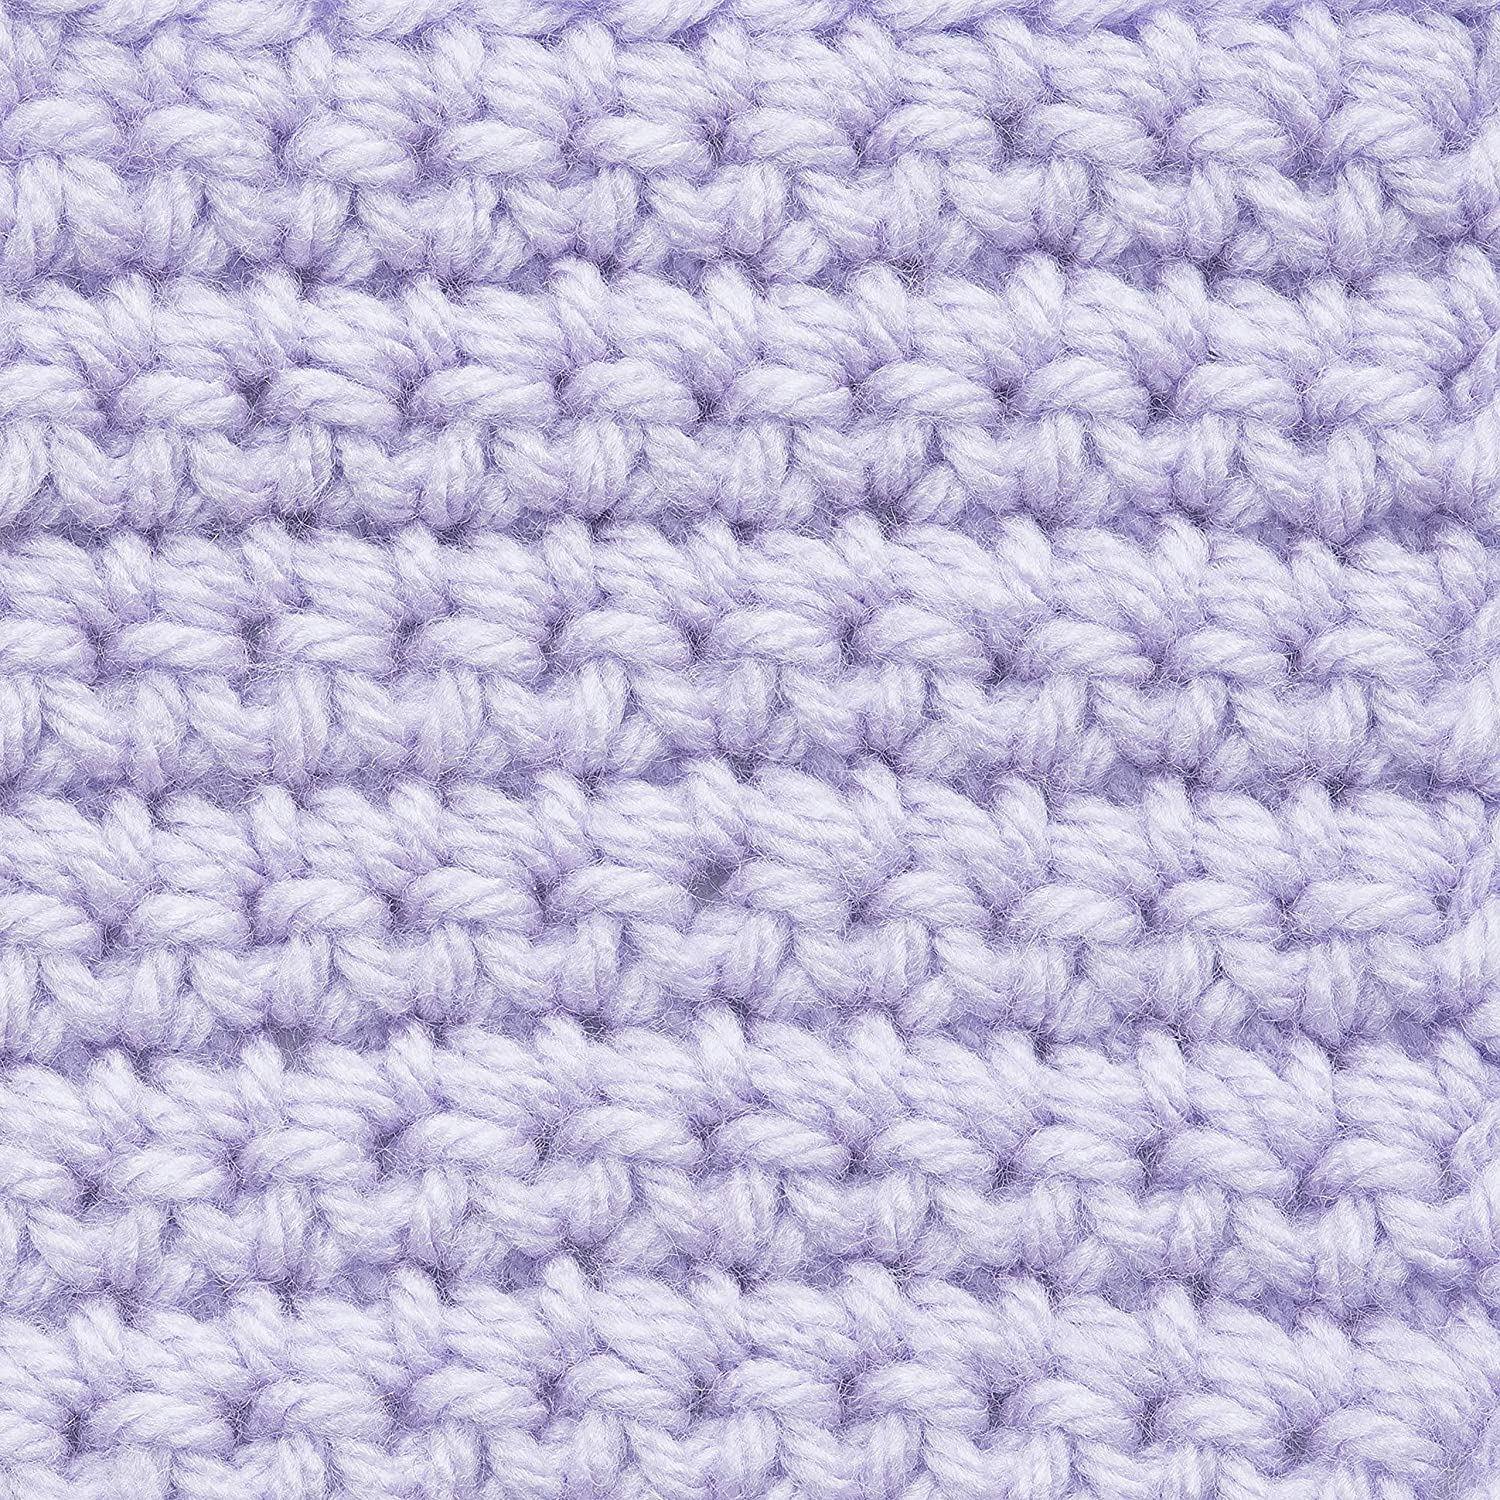 Caron Lilac One Pound List price Yarn of Pack Multipack 5 popular 4